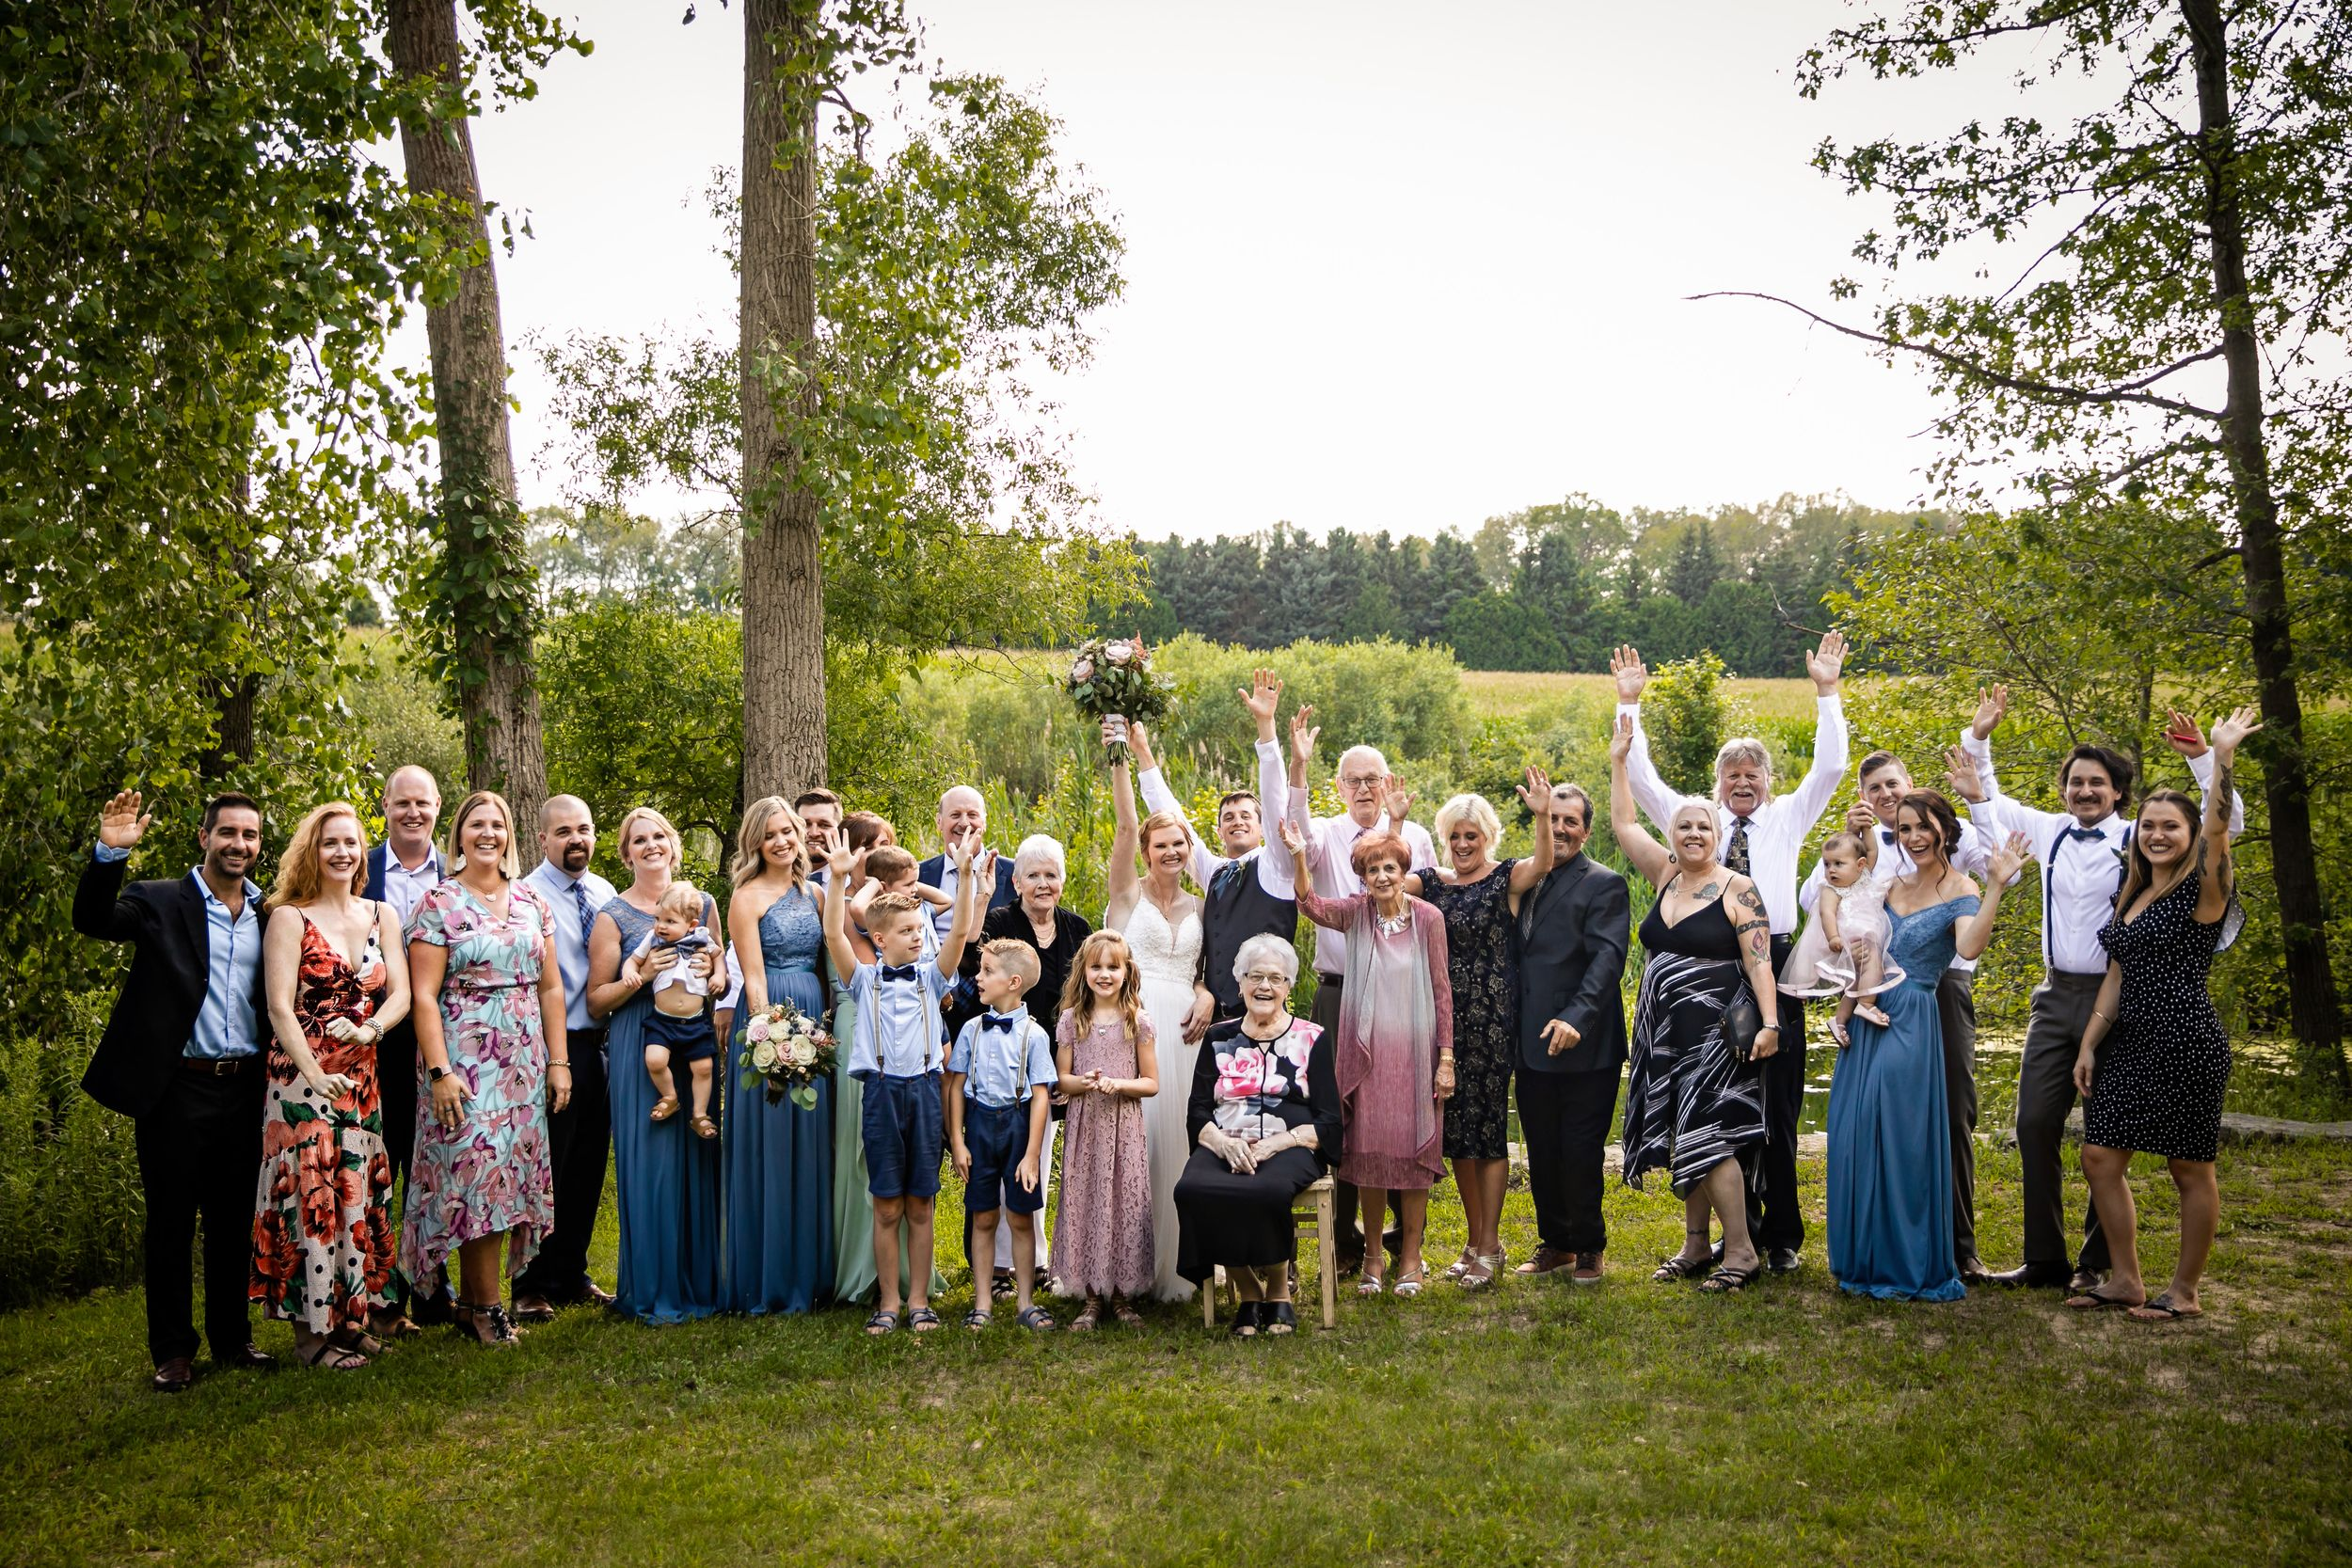 Charming rustic backyard wedding in Mount Brydges Ontario by London photographer Shawn Van Daele